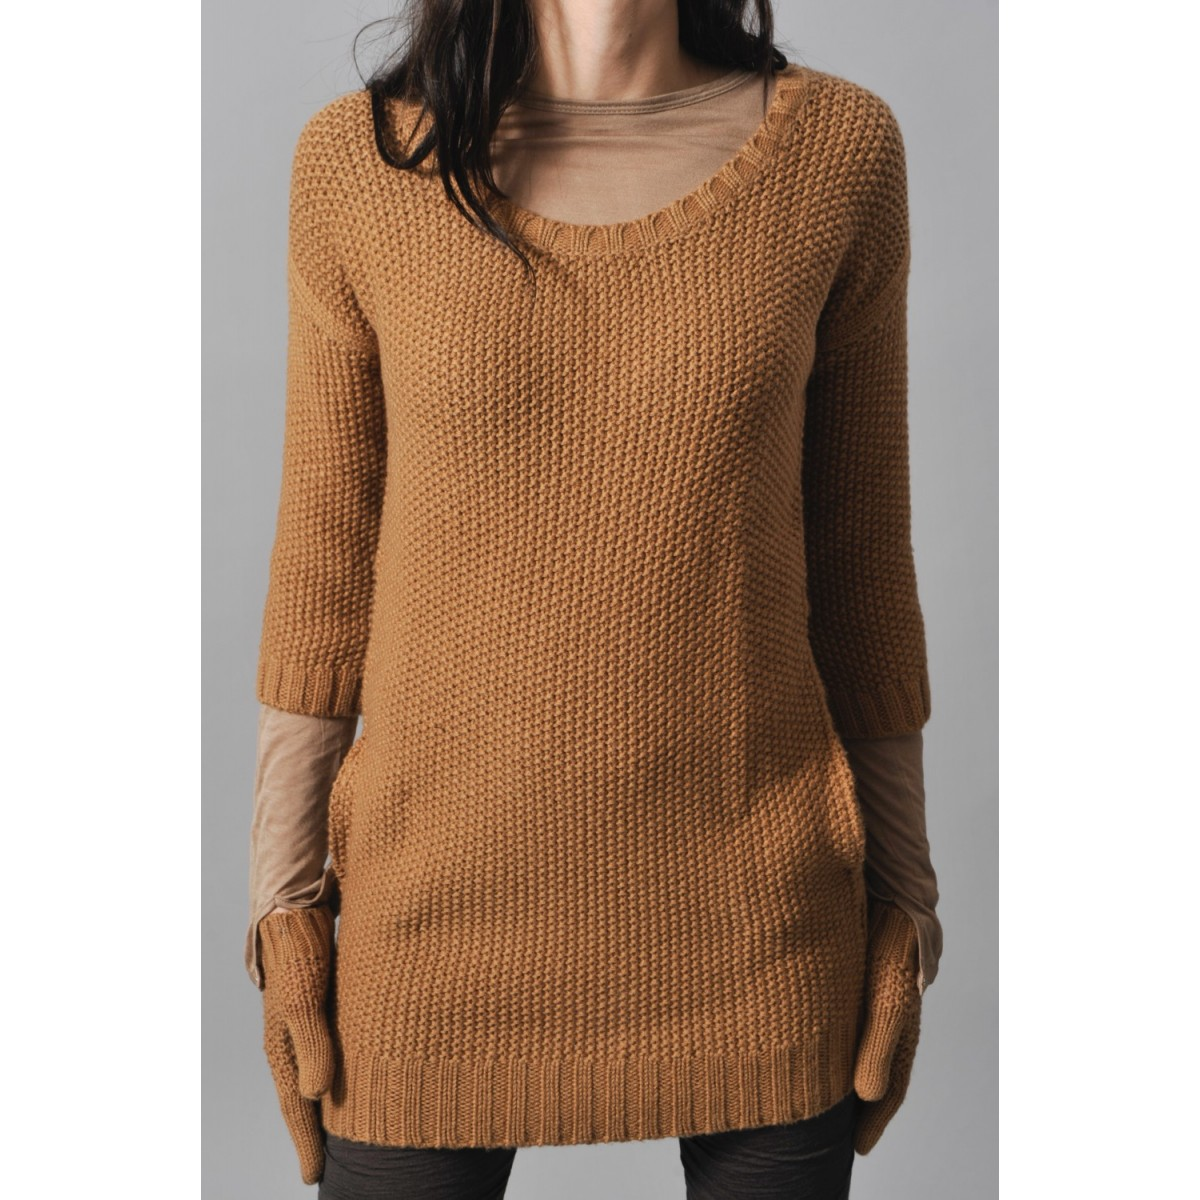 7069f8f95217 Pull camel femme - Laine et tricot